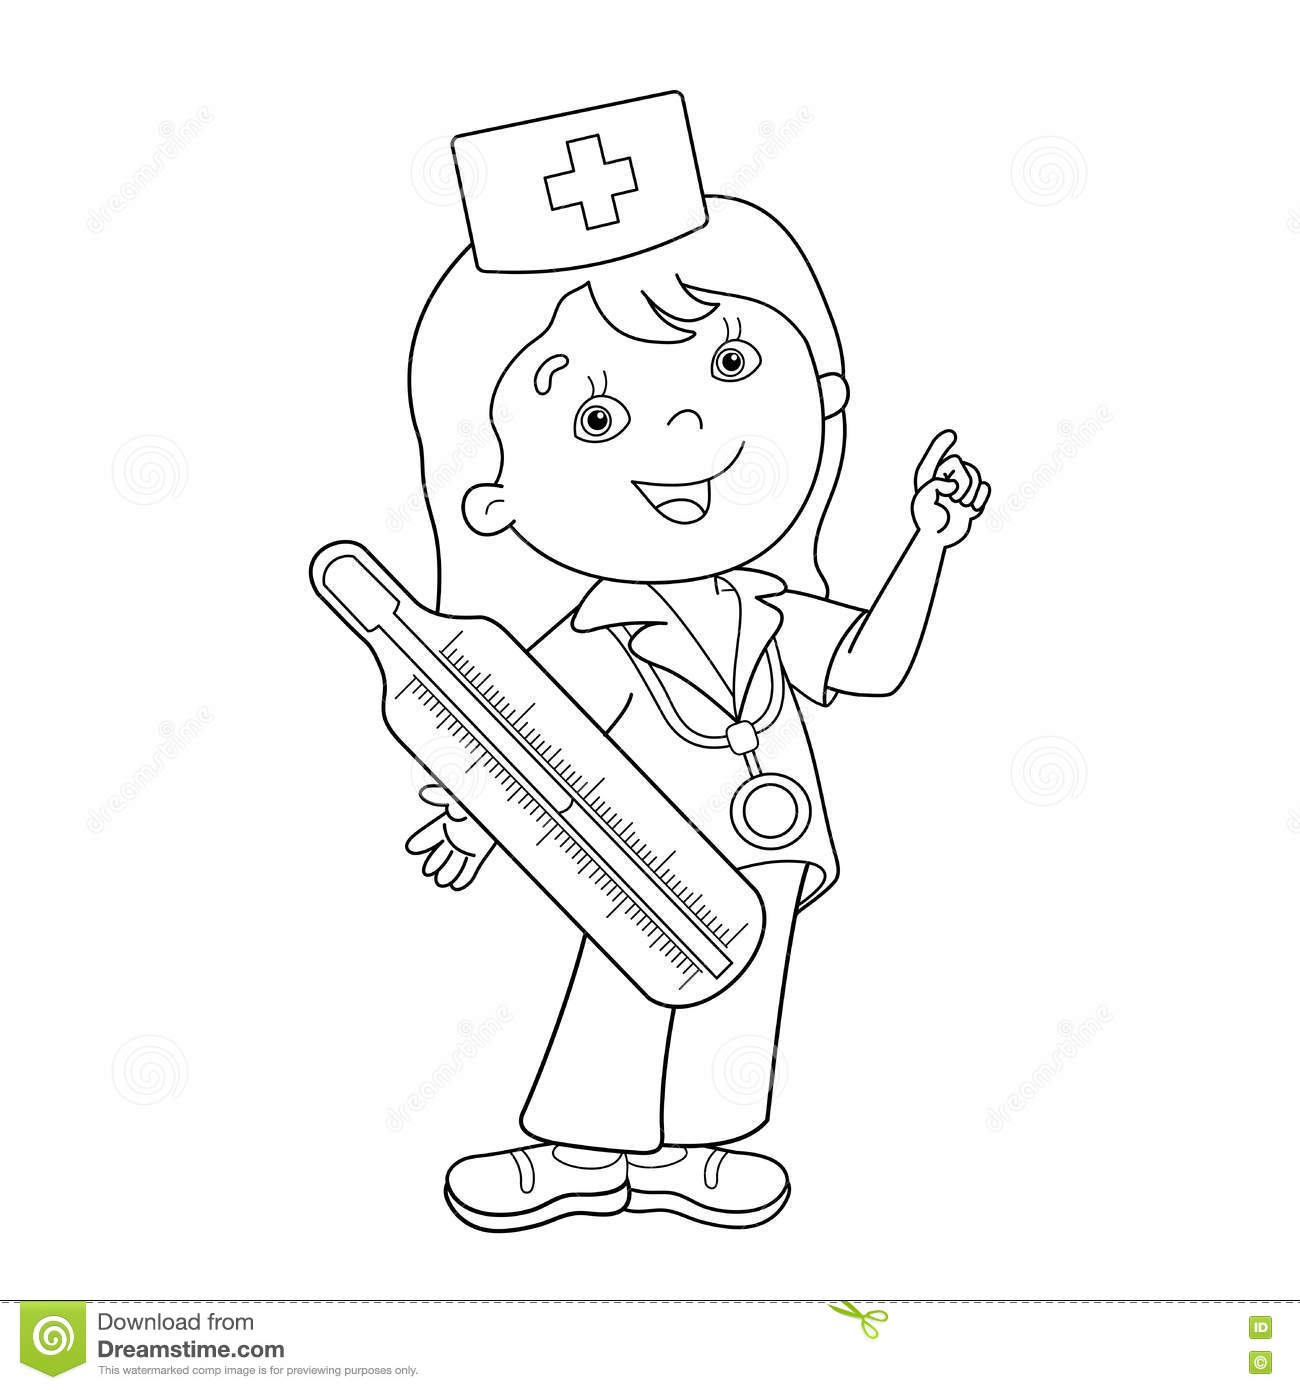 100 doctor who coloring page cute doctor bear coloring page